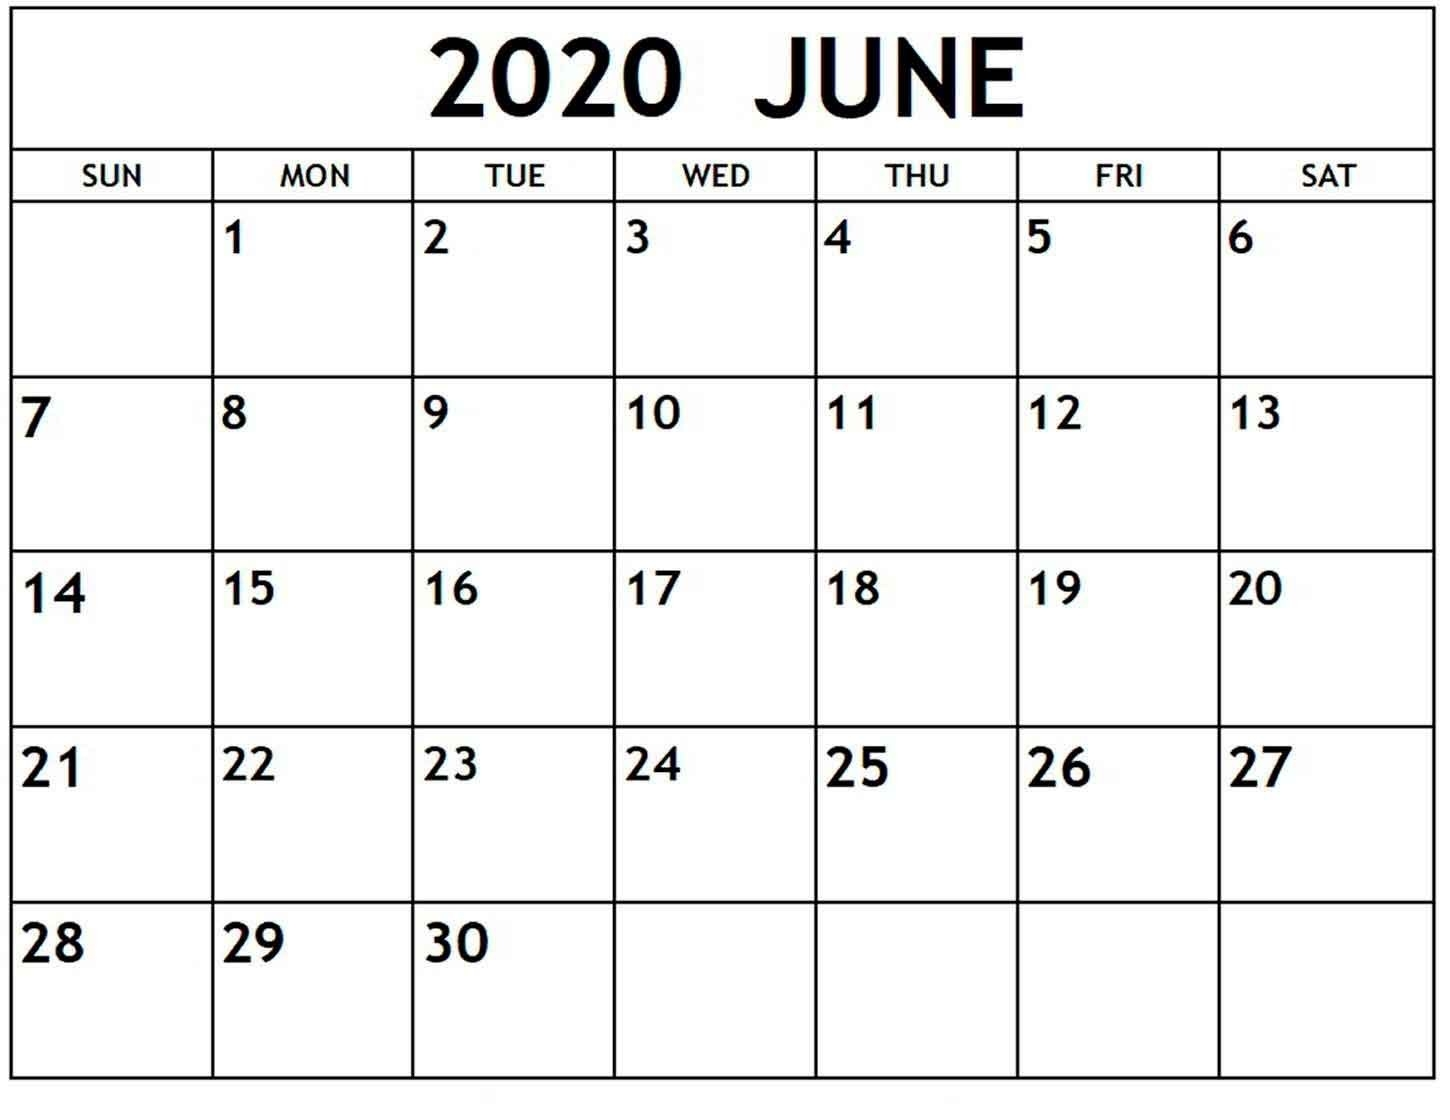 Blank Calendar June 2020 - Free Printable Monthly Calendars  Blank June Calendar 2020